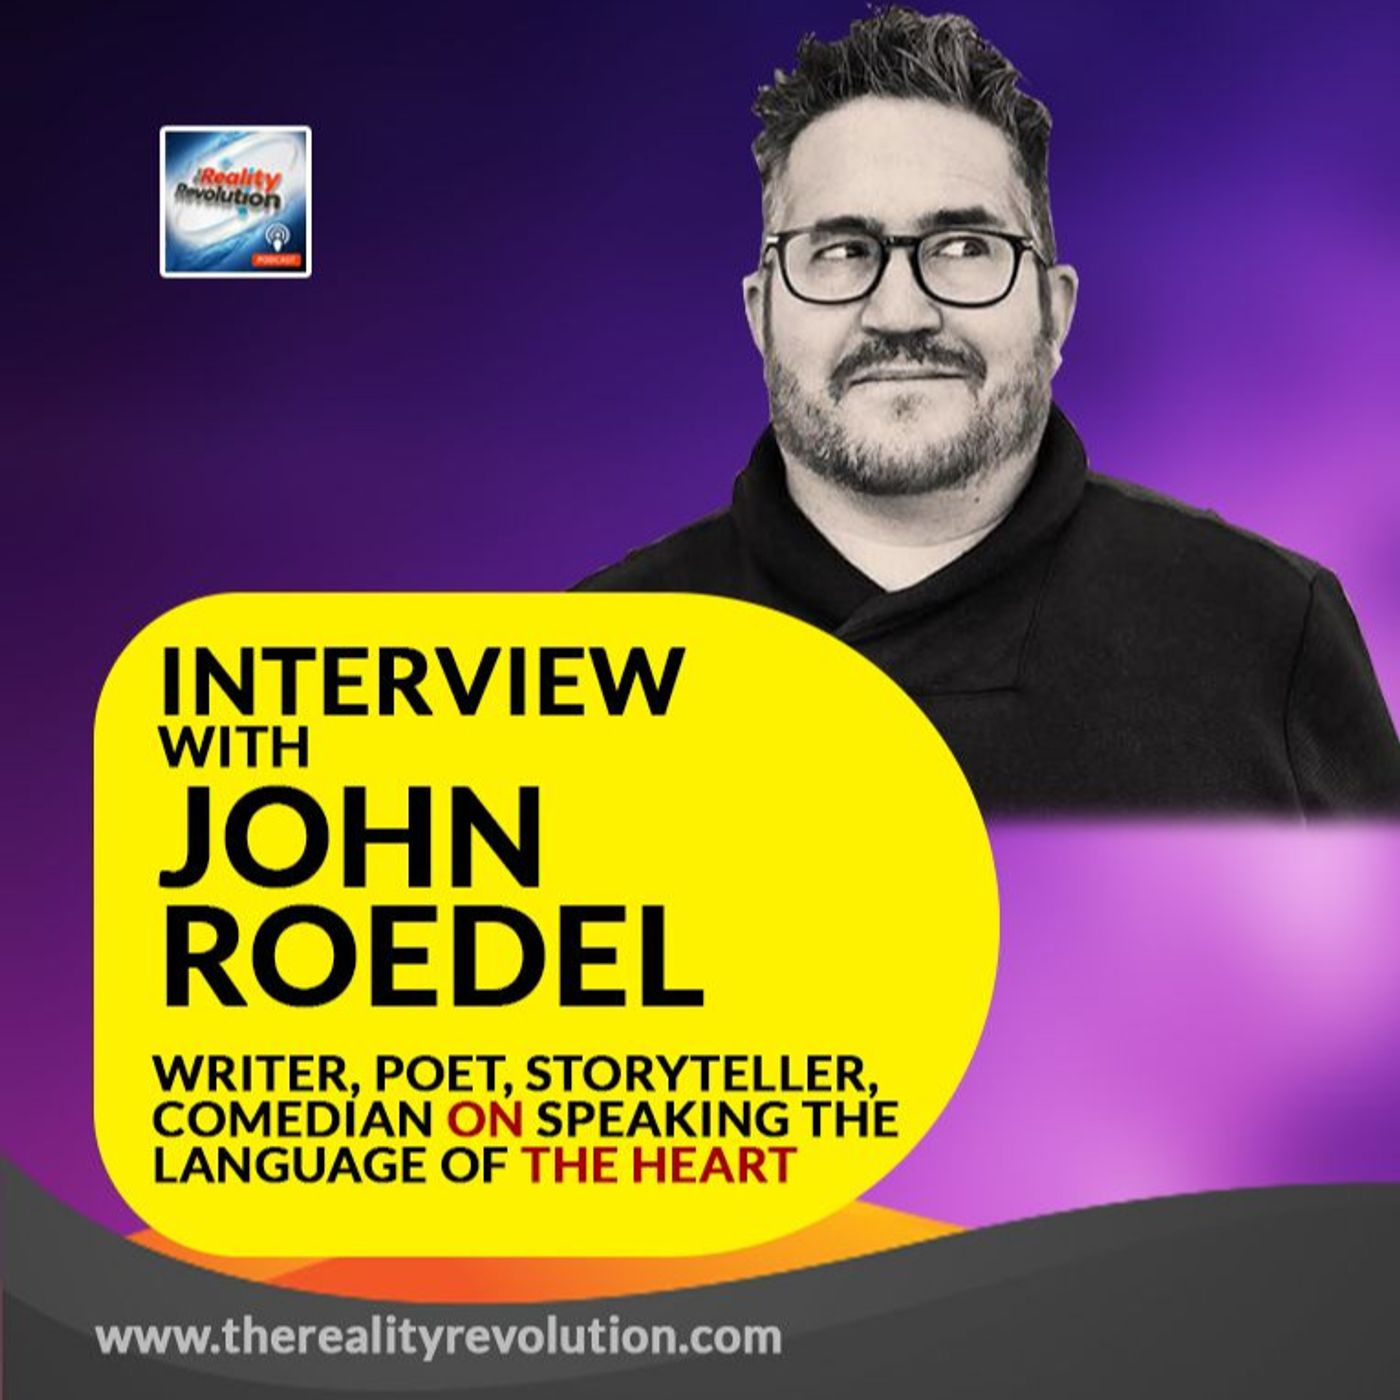 Interview With John Roedel - Writer, Poet, Comedian - On Speaking The Language Of The Heart